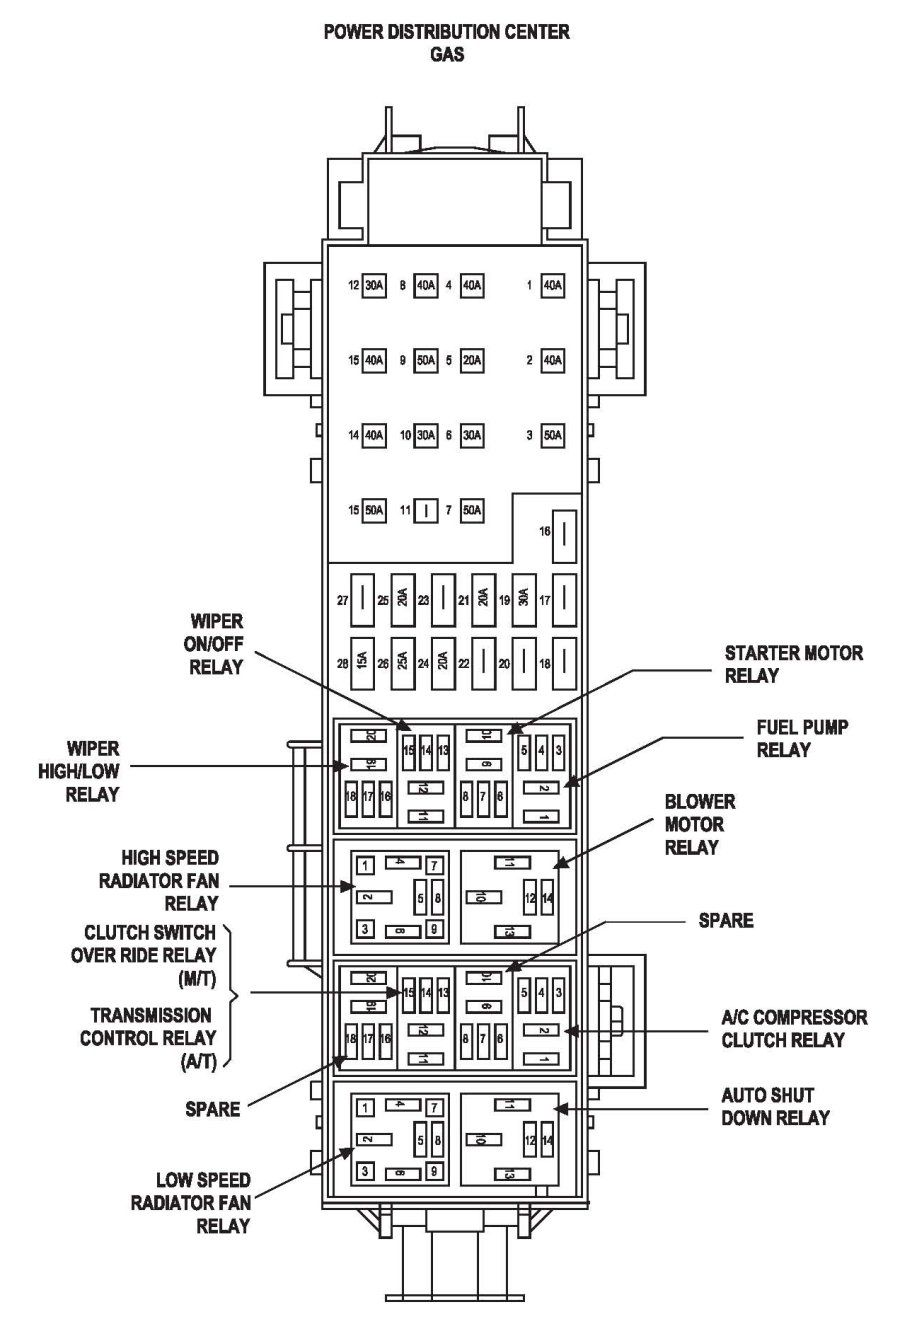 jeep comp fuse box location jeep liberty fuse box diagram - image details | jeep ...